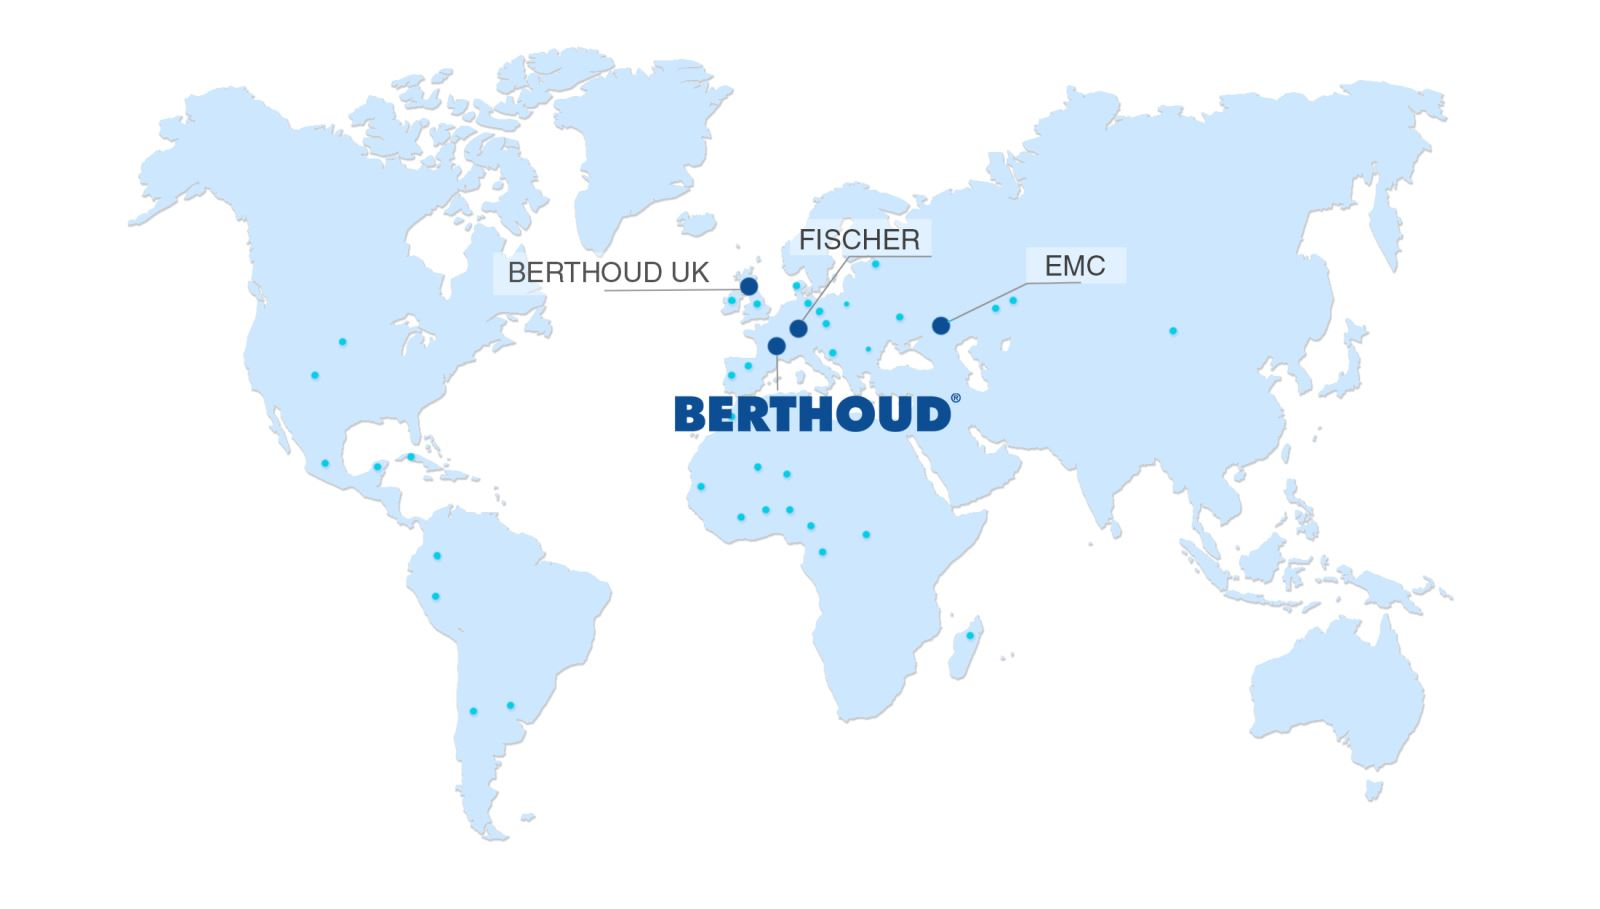 BERTHOUD's head office in France and subsidiaries abroad